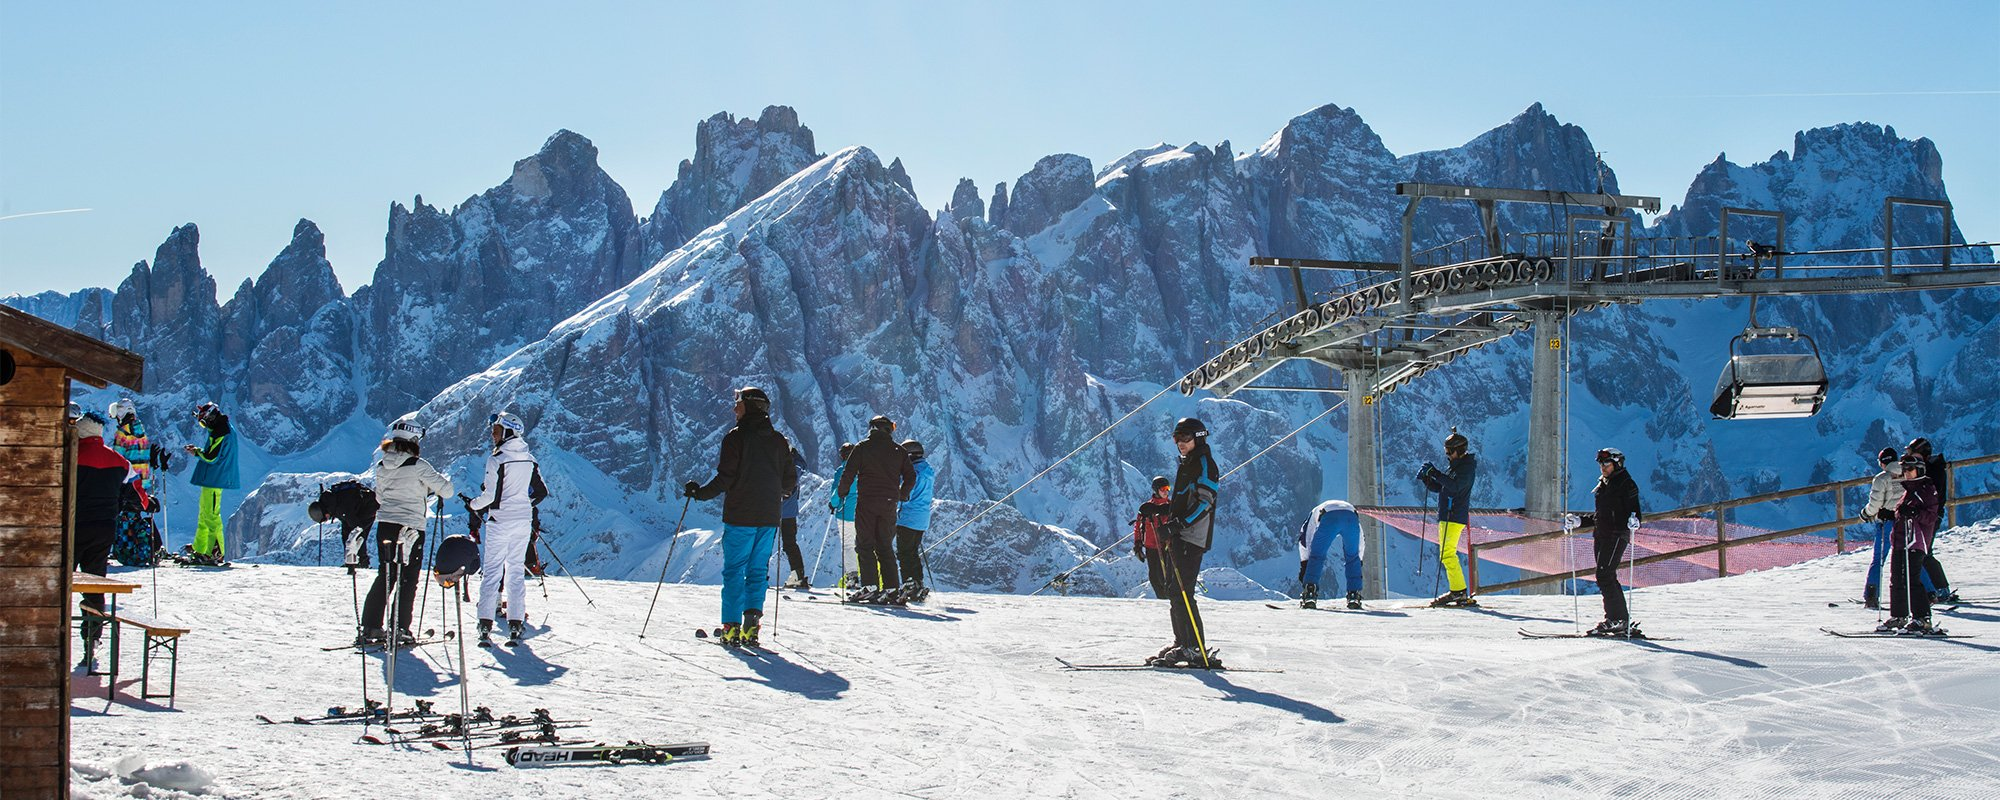 Sciare in Val di Fassa